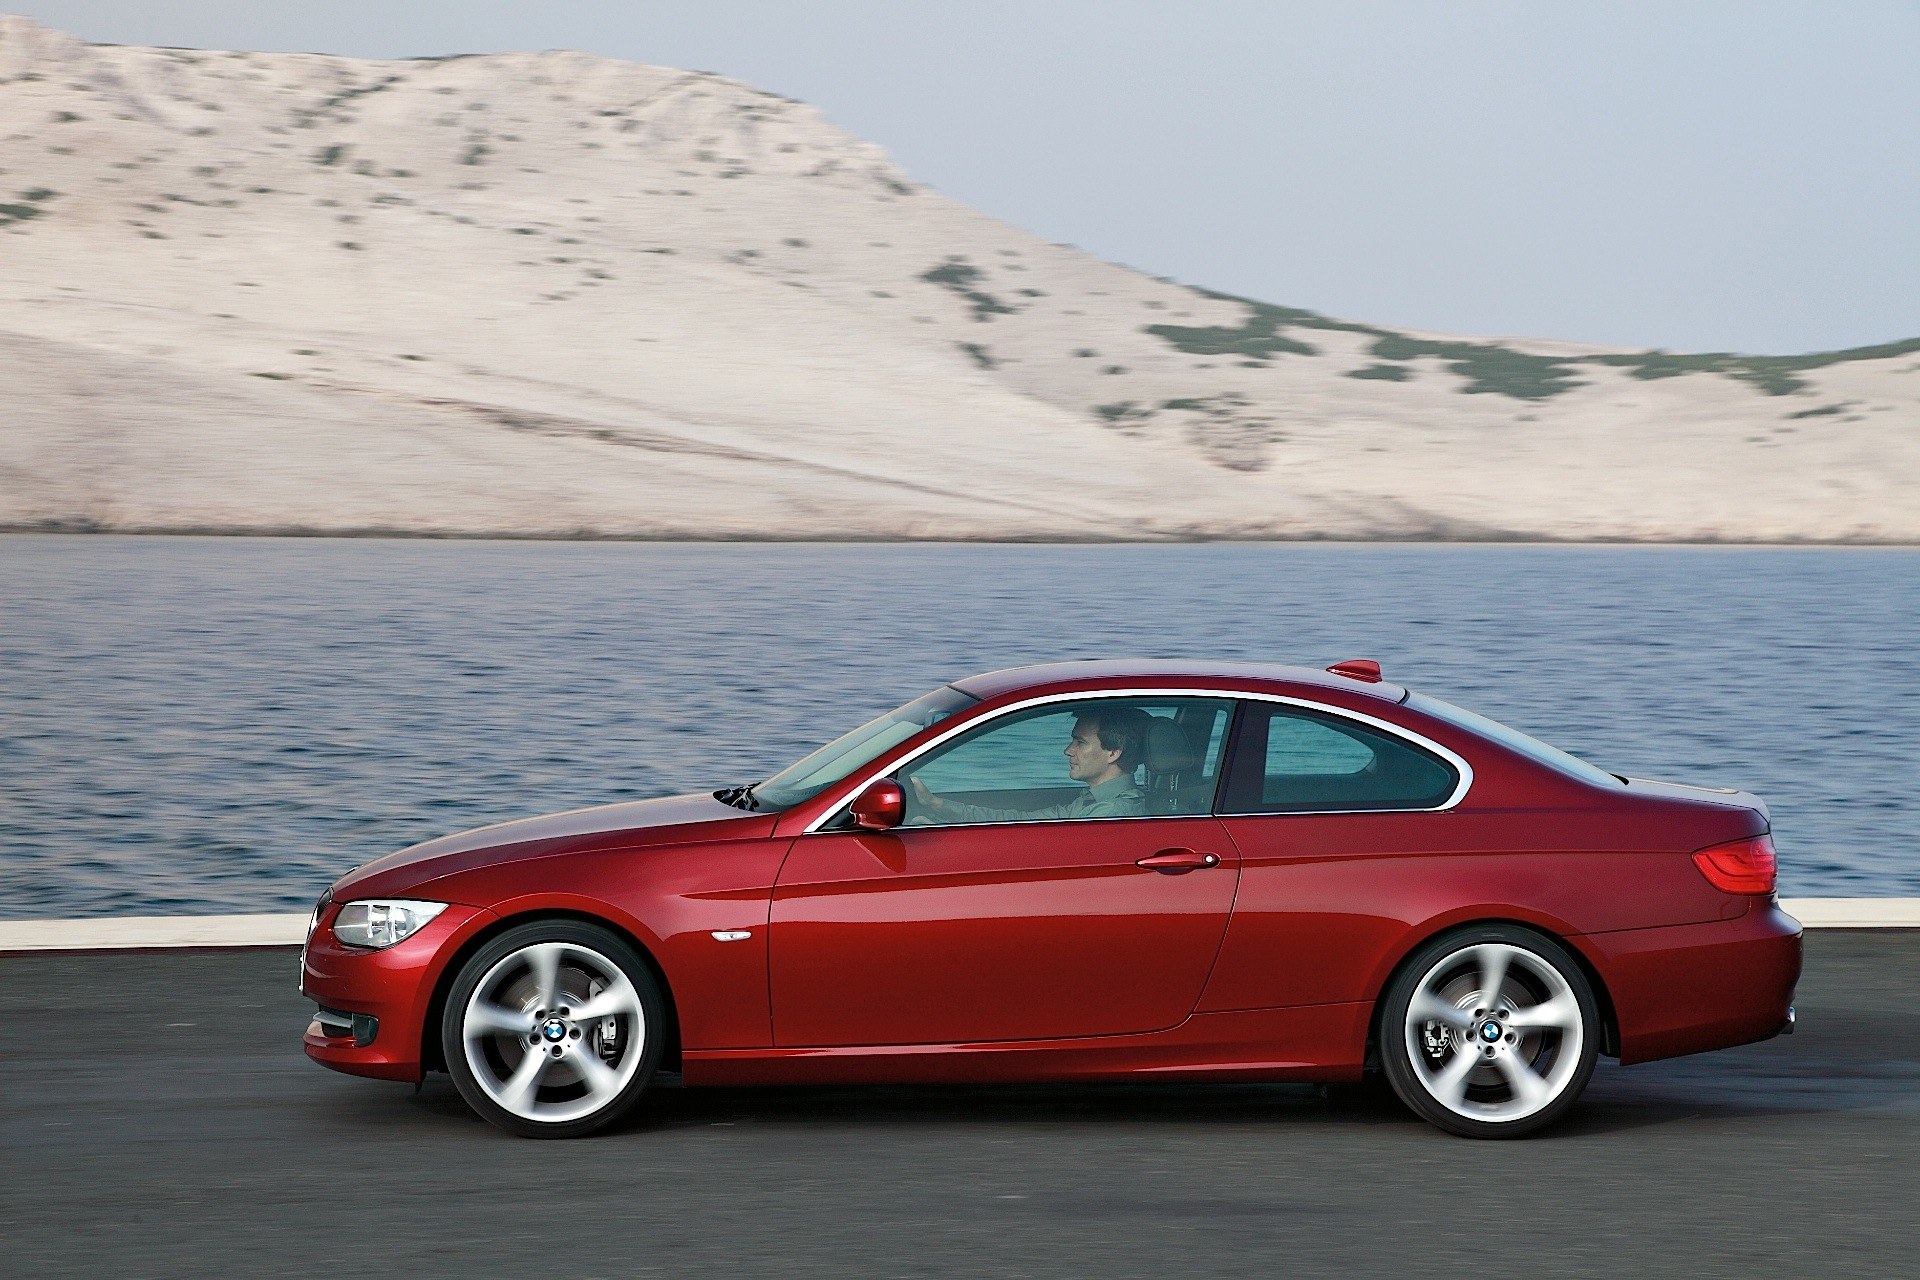 Bmw Series Coupe E Pictures Information And Specs - Bmw 328i coupe specs